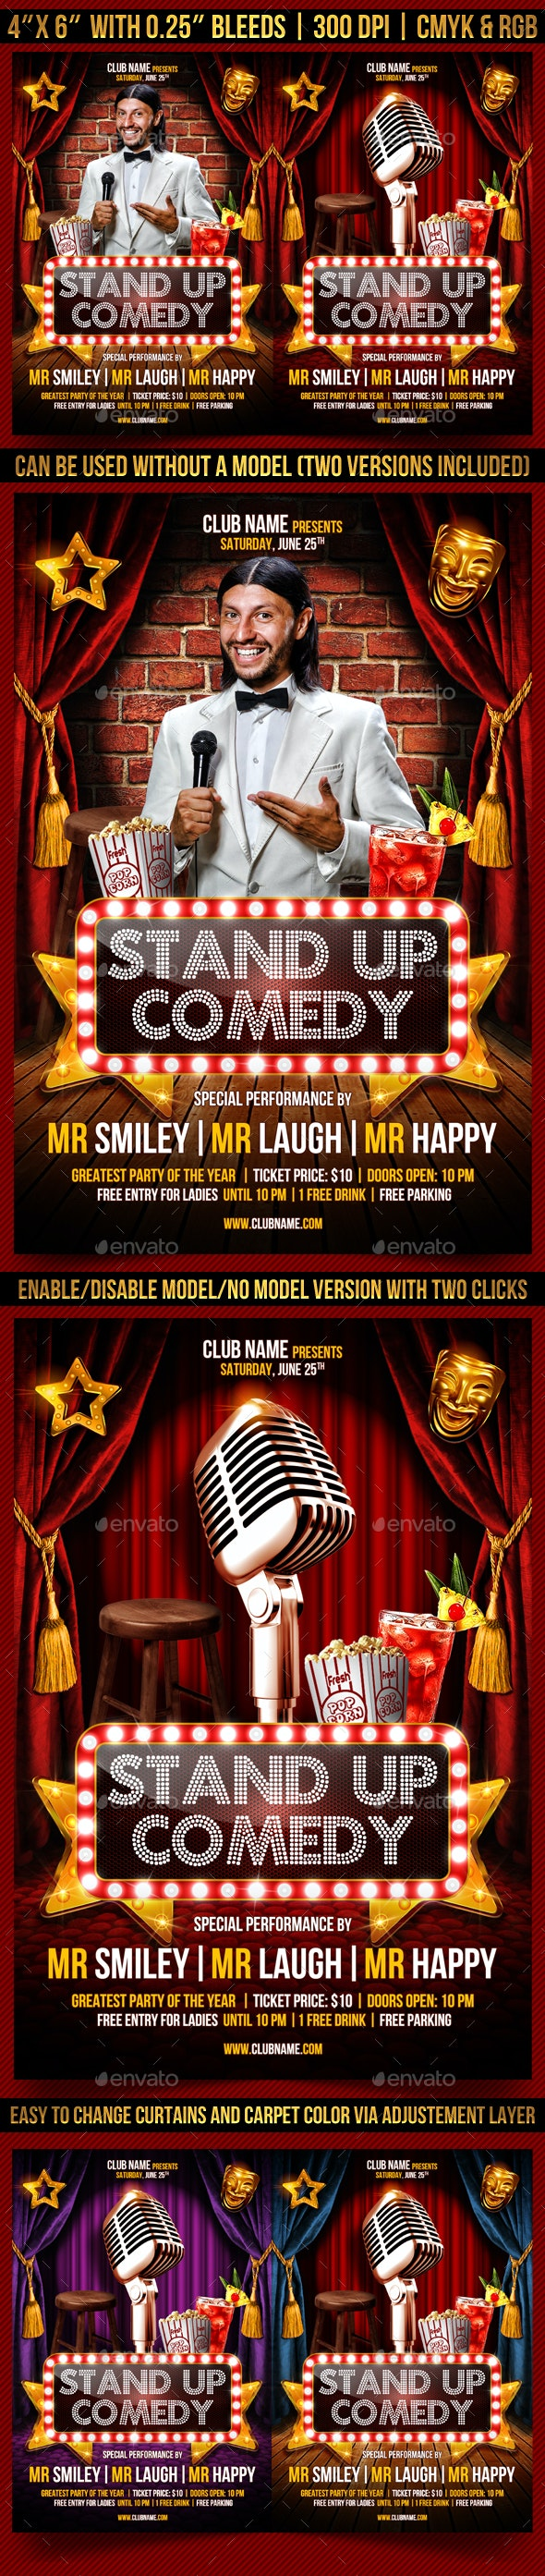 Stand Up Comedy Flyer Temlapte - Clubs & Parties Events